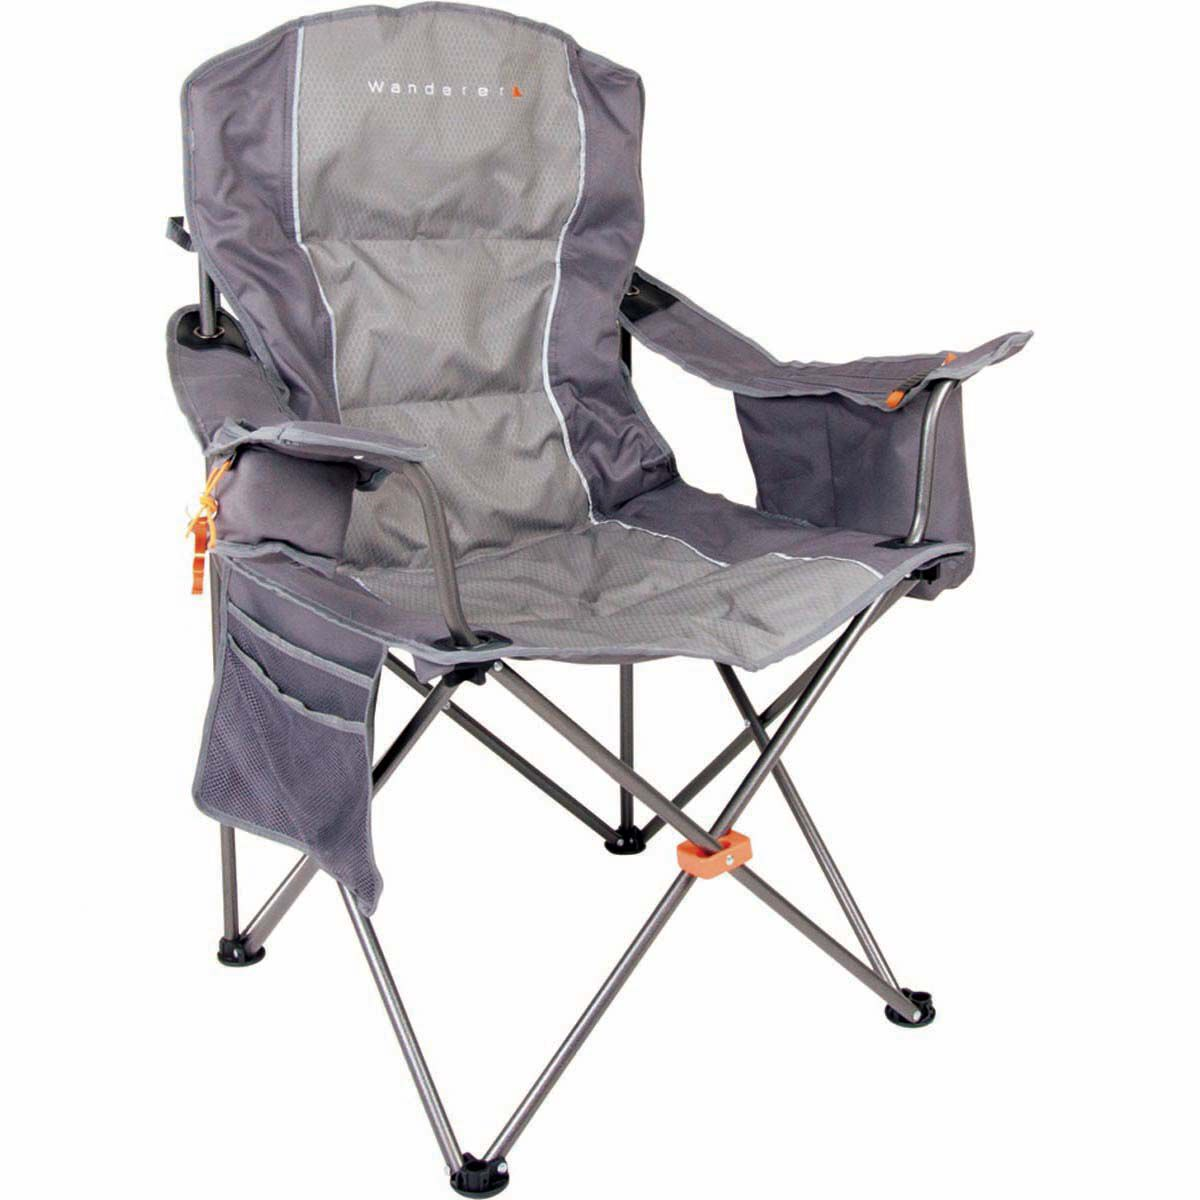 fishing chair spare parts folding table and chairs set beach buy online bcf australia premium cooler arm hi res